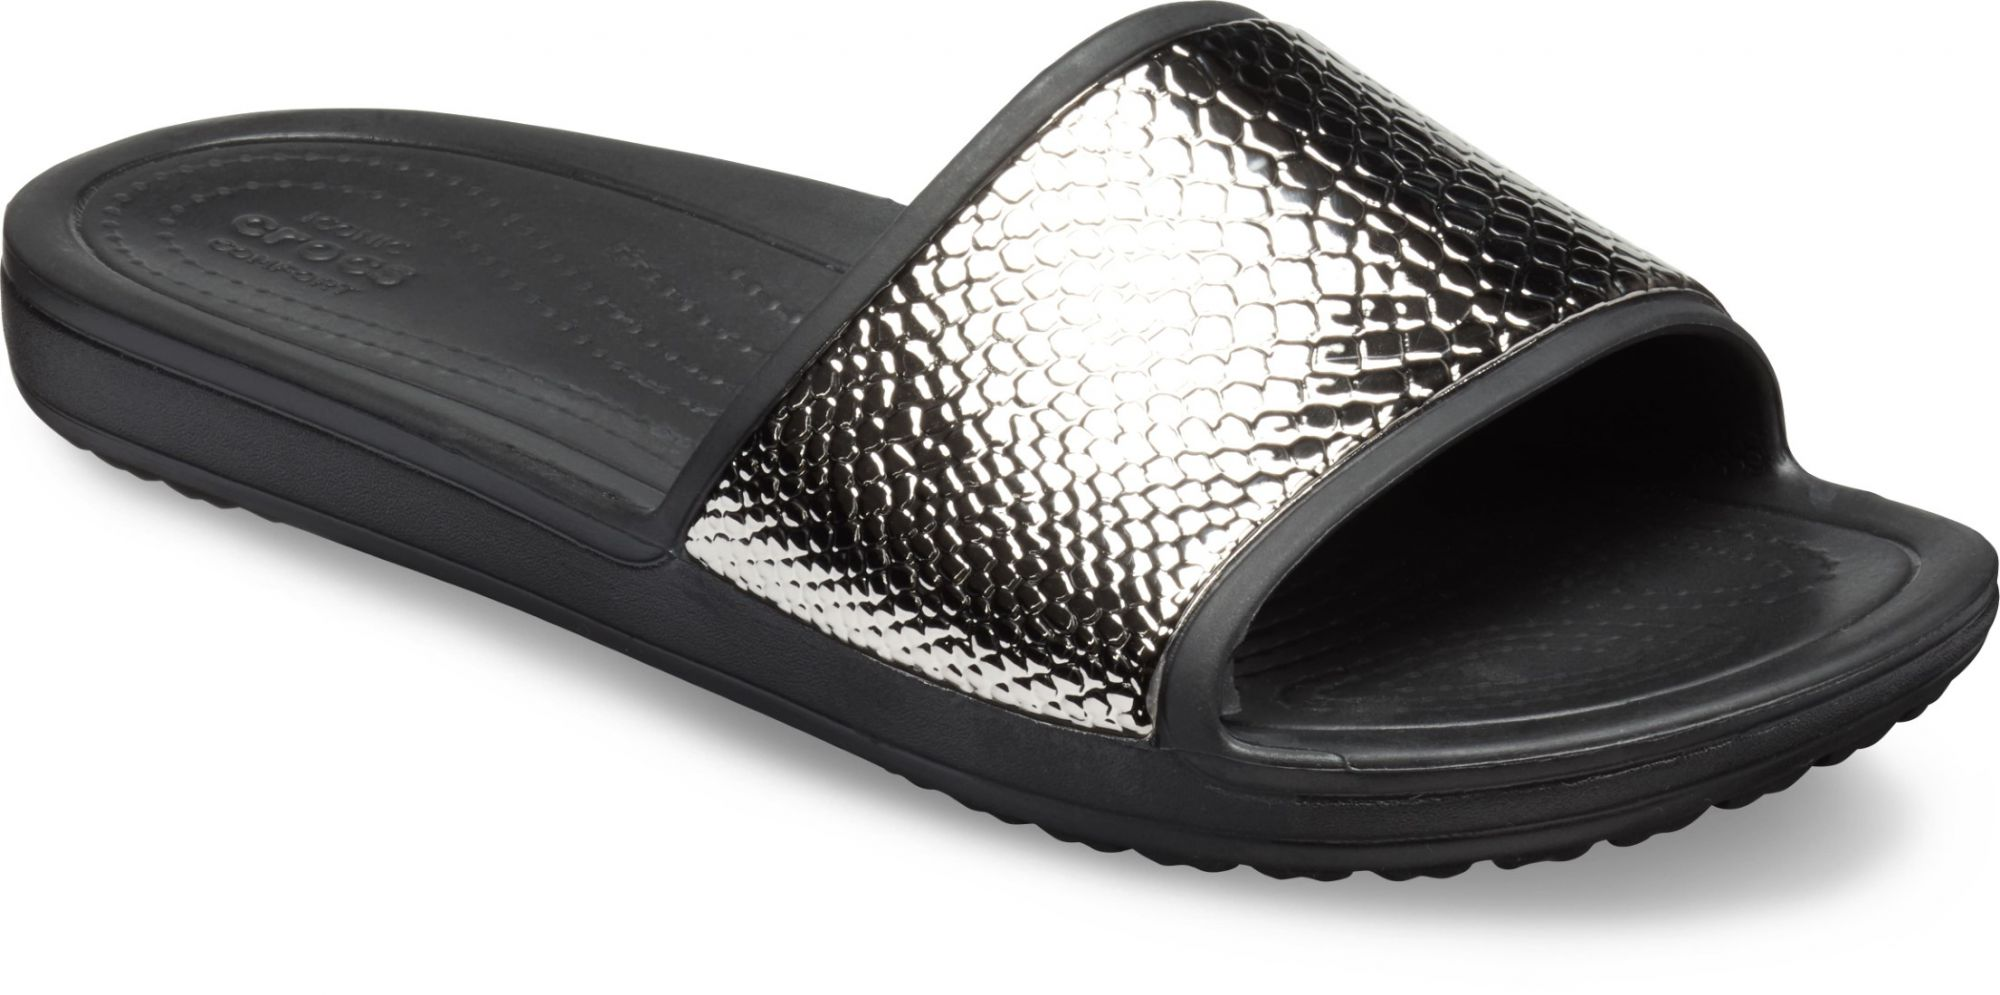 Crocs černé pantofle Sloane Metal Text Slide Gunmetal/Black